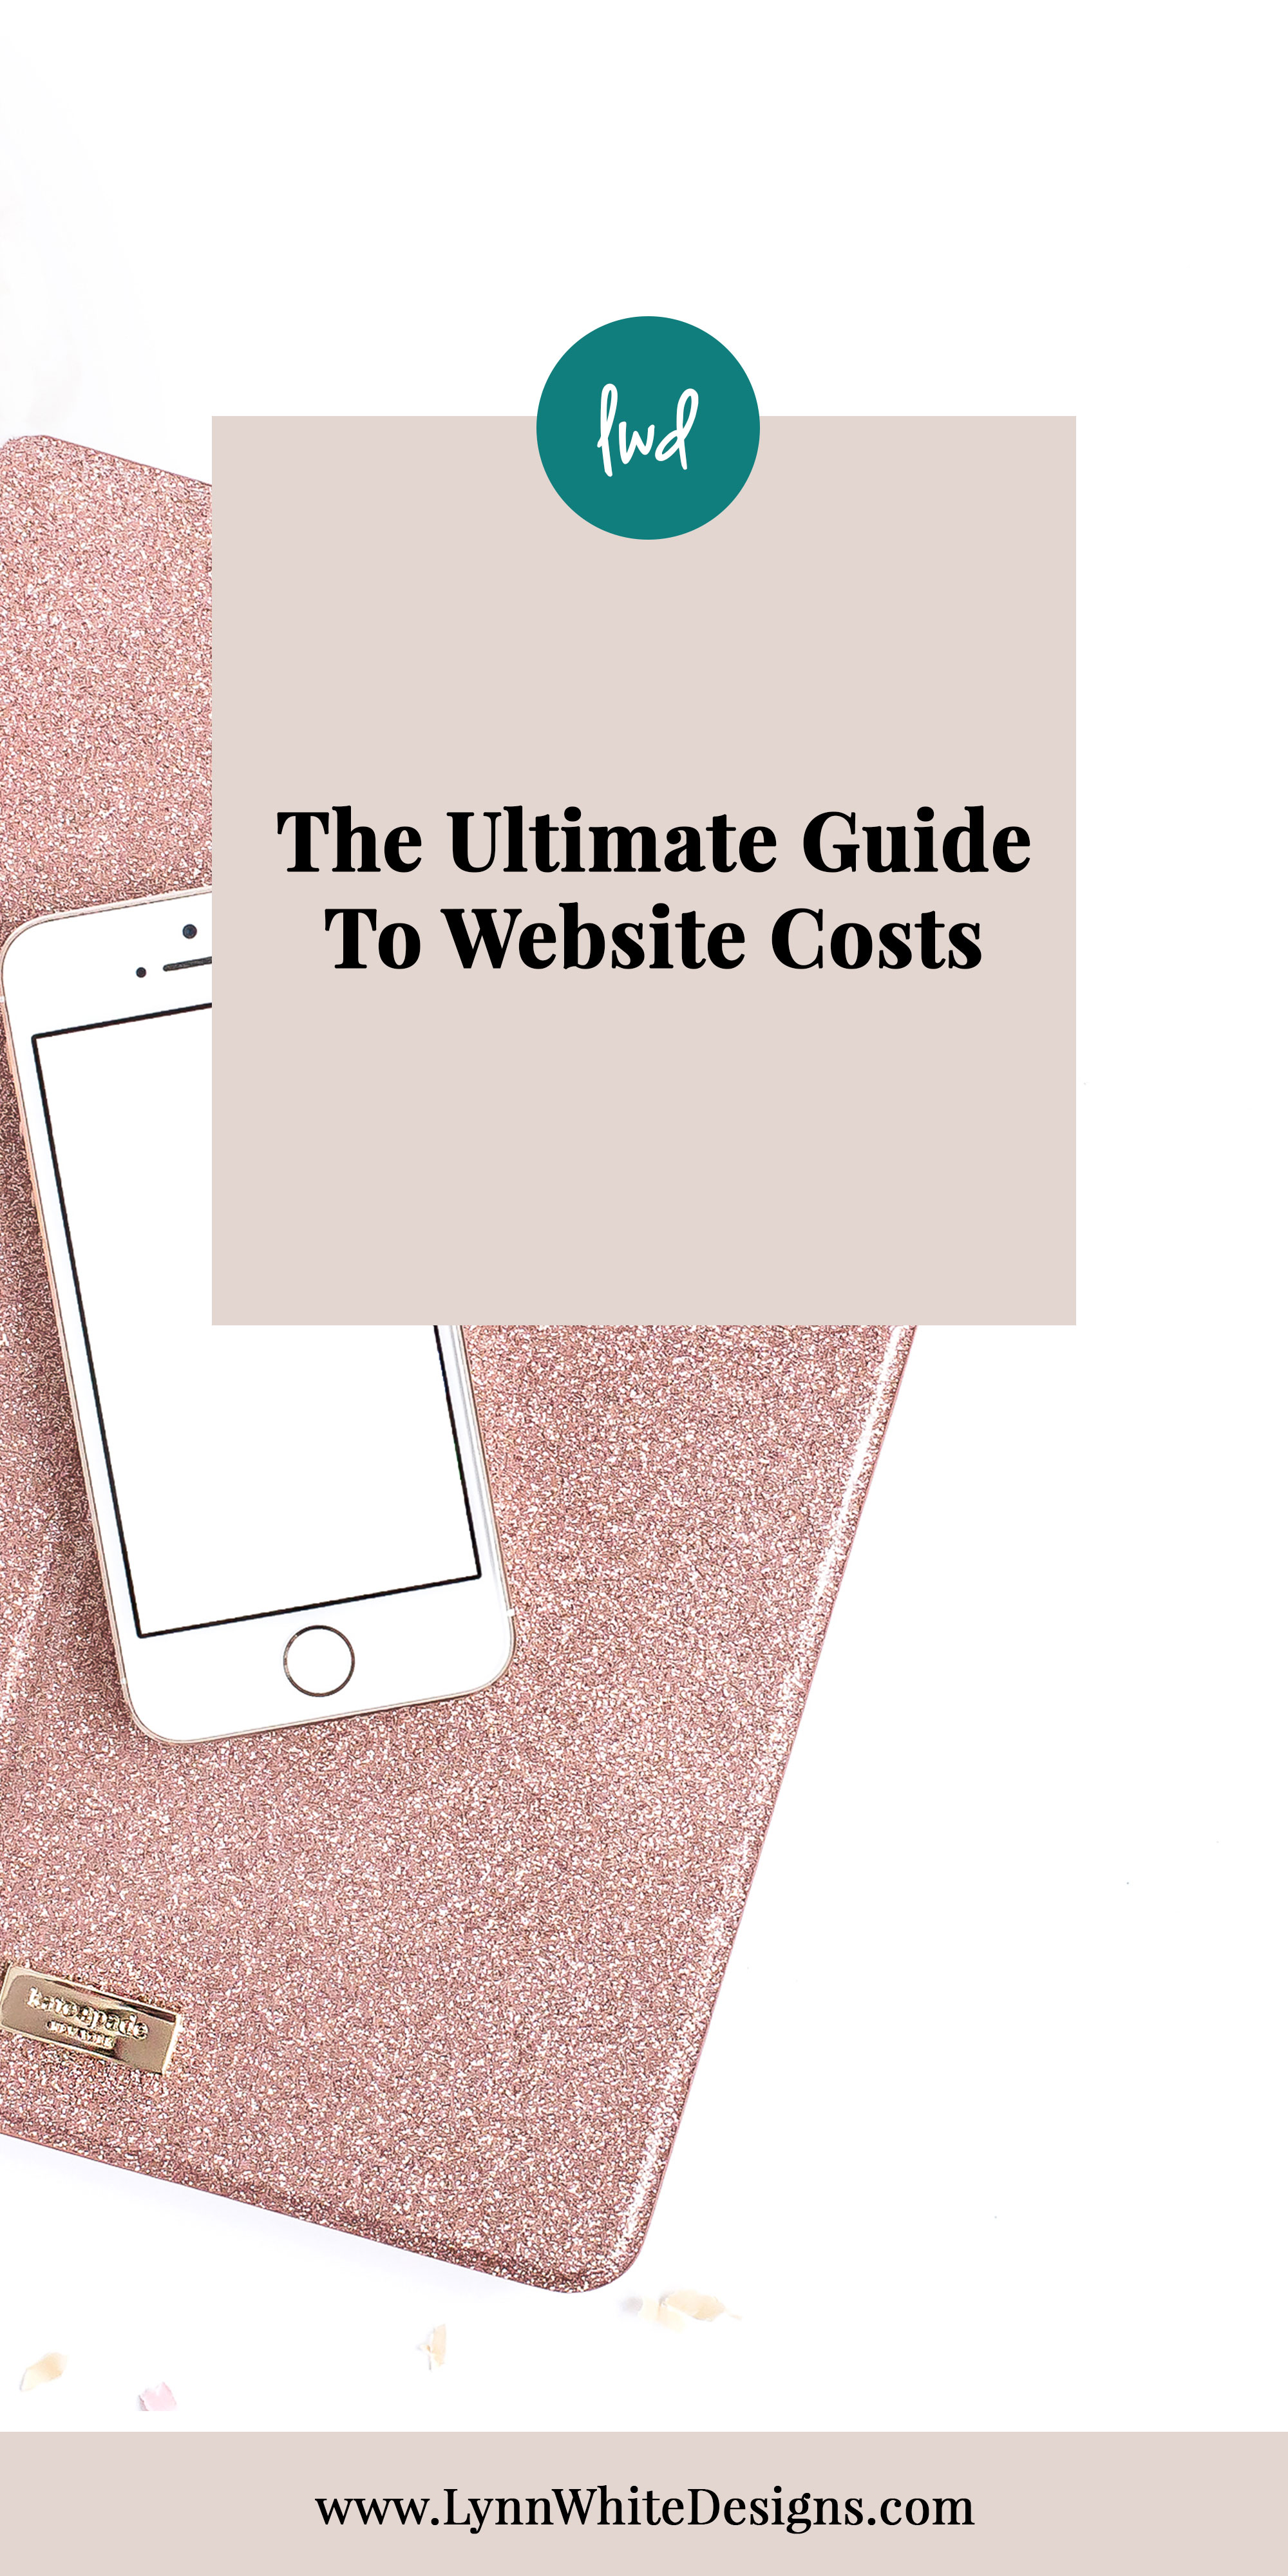 Ultimate-Guide-to-Website-Costs-by-Lynn-White-Designs